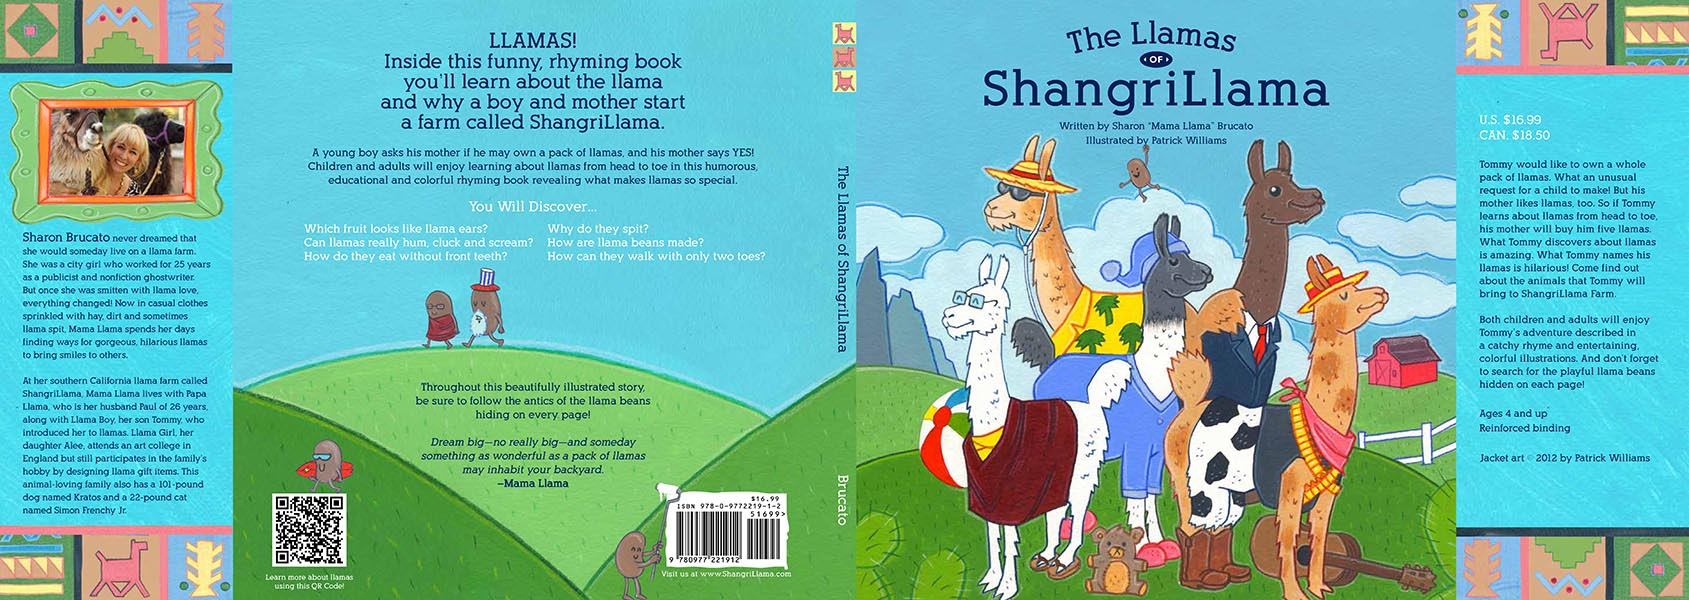 The Llamas of Shangrillama dust jacket and cover